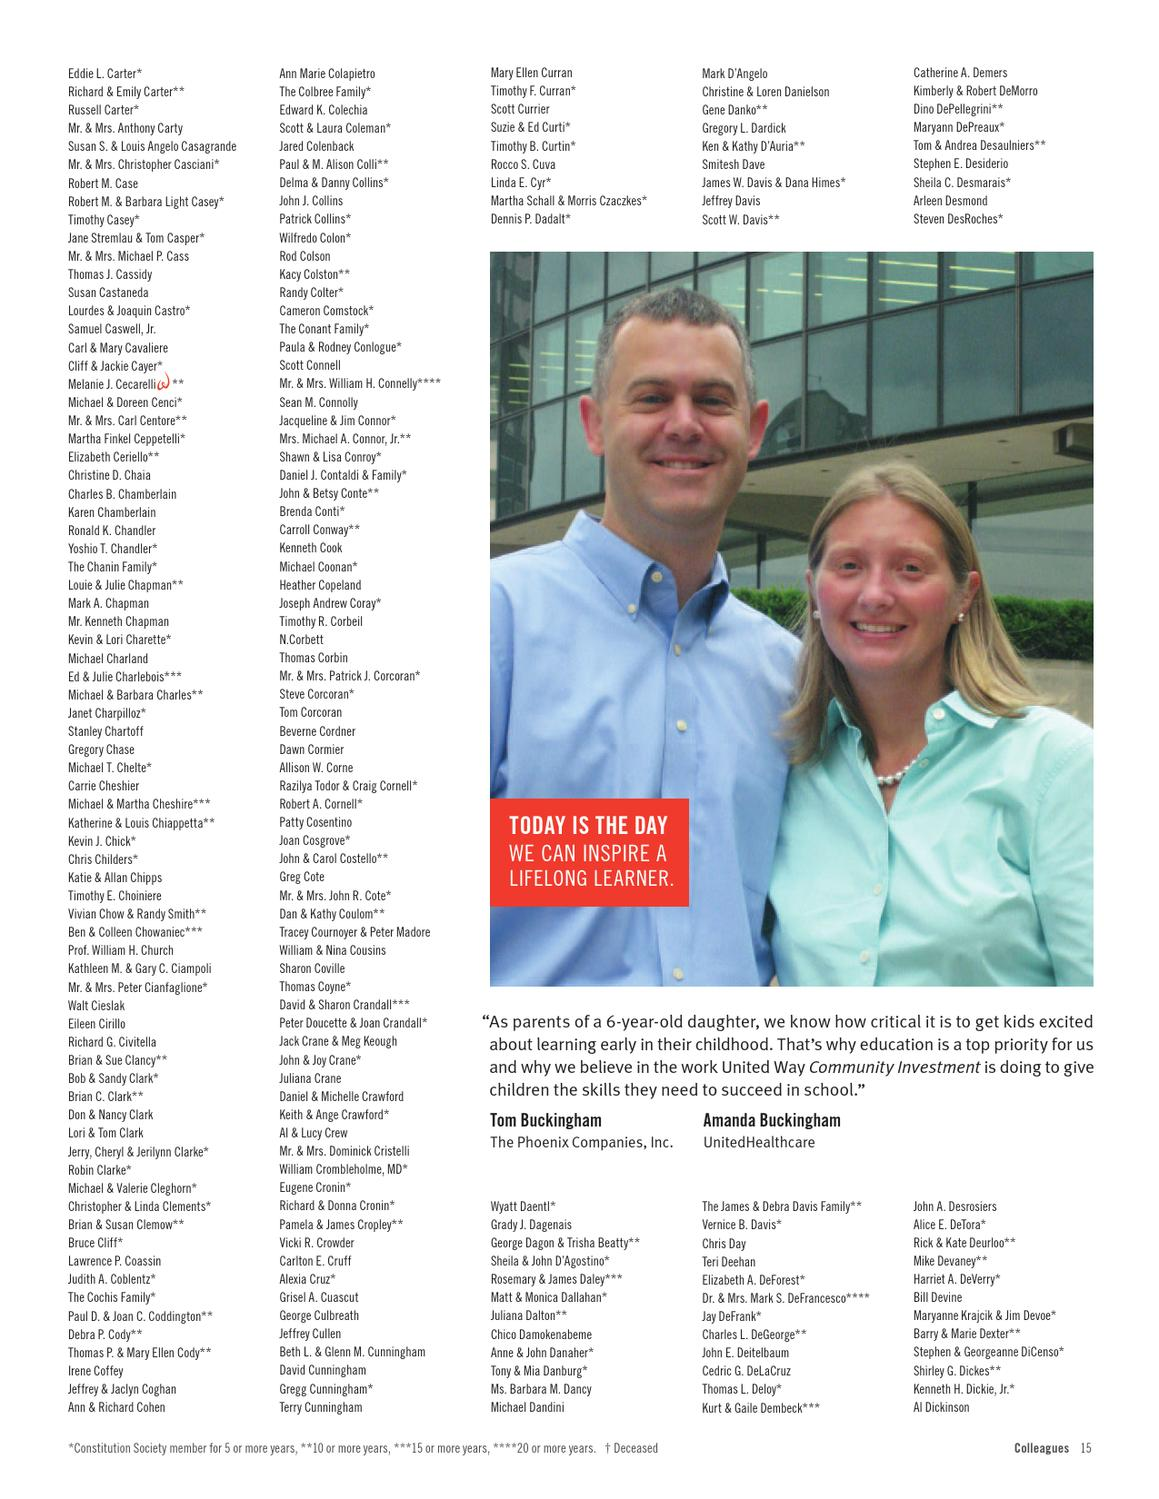 2011/2012 Leadership Roster by United Way of Central and